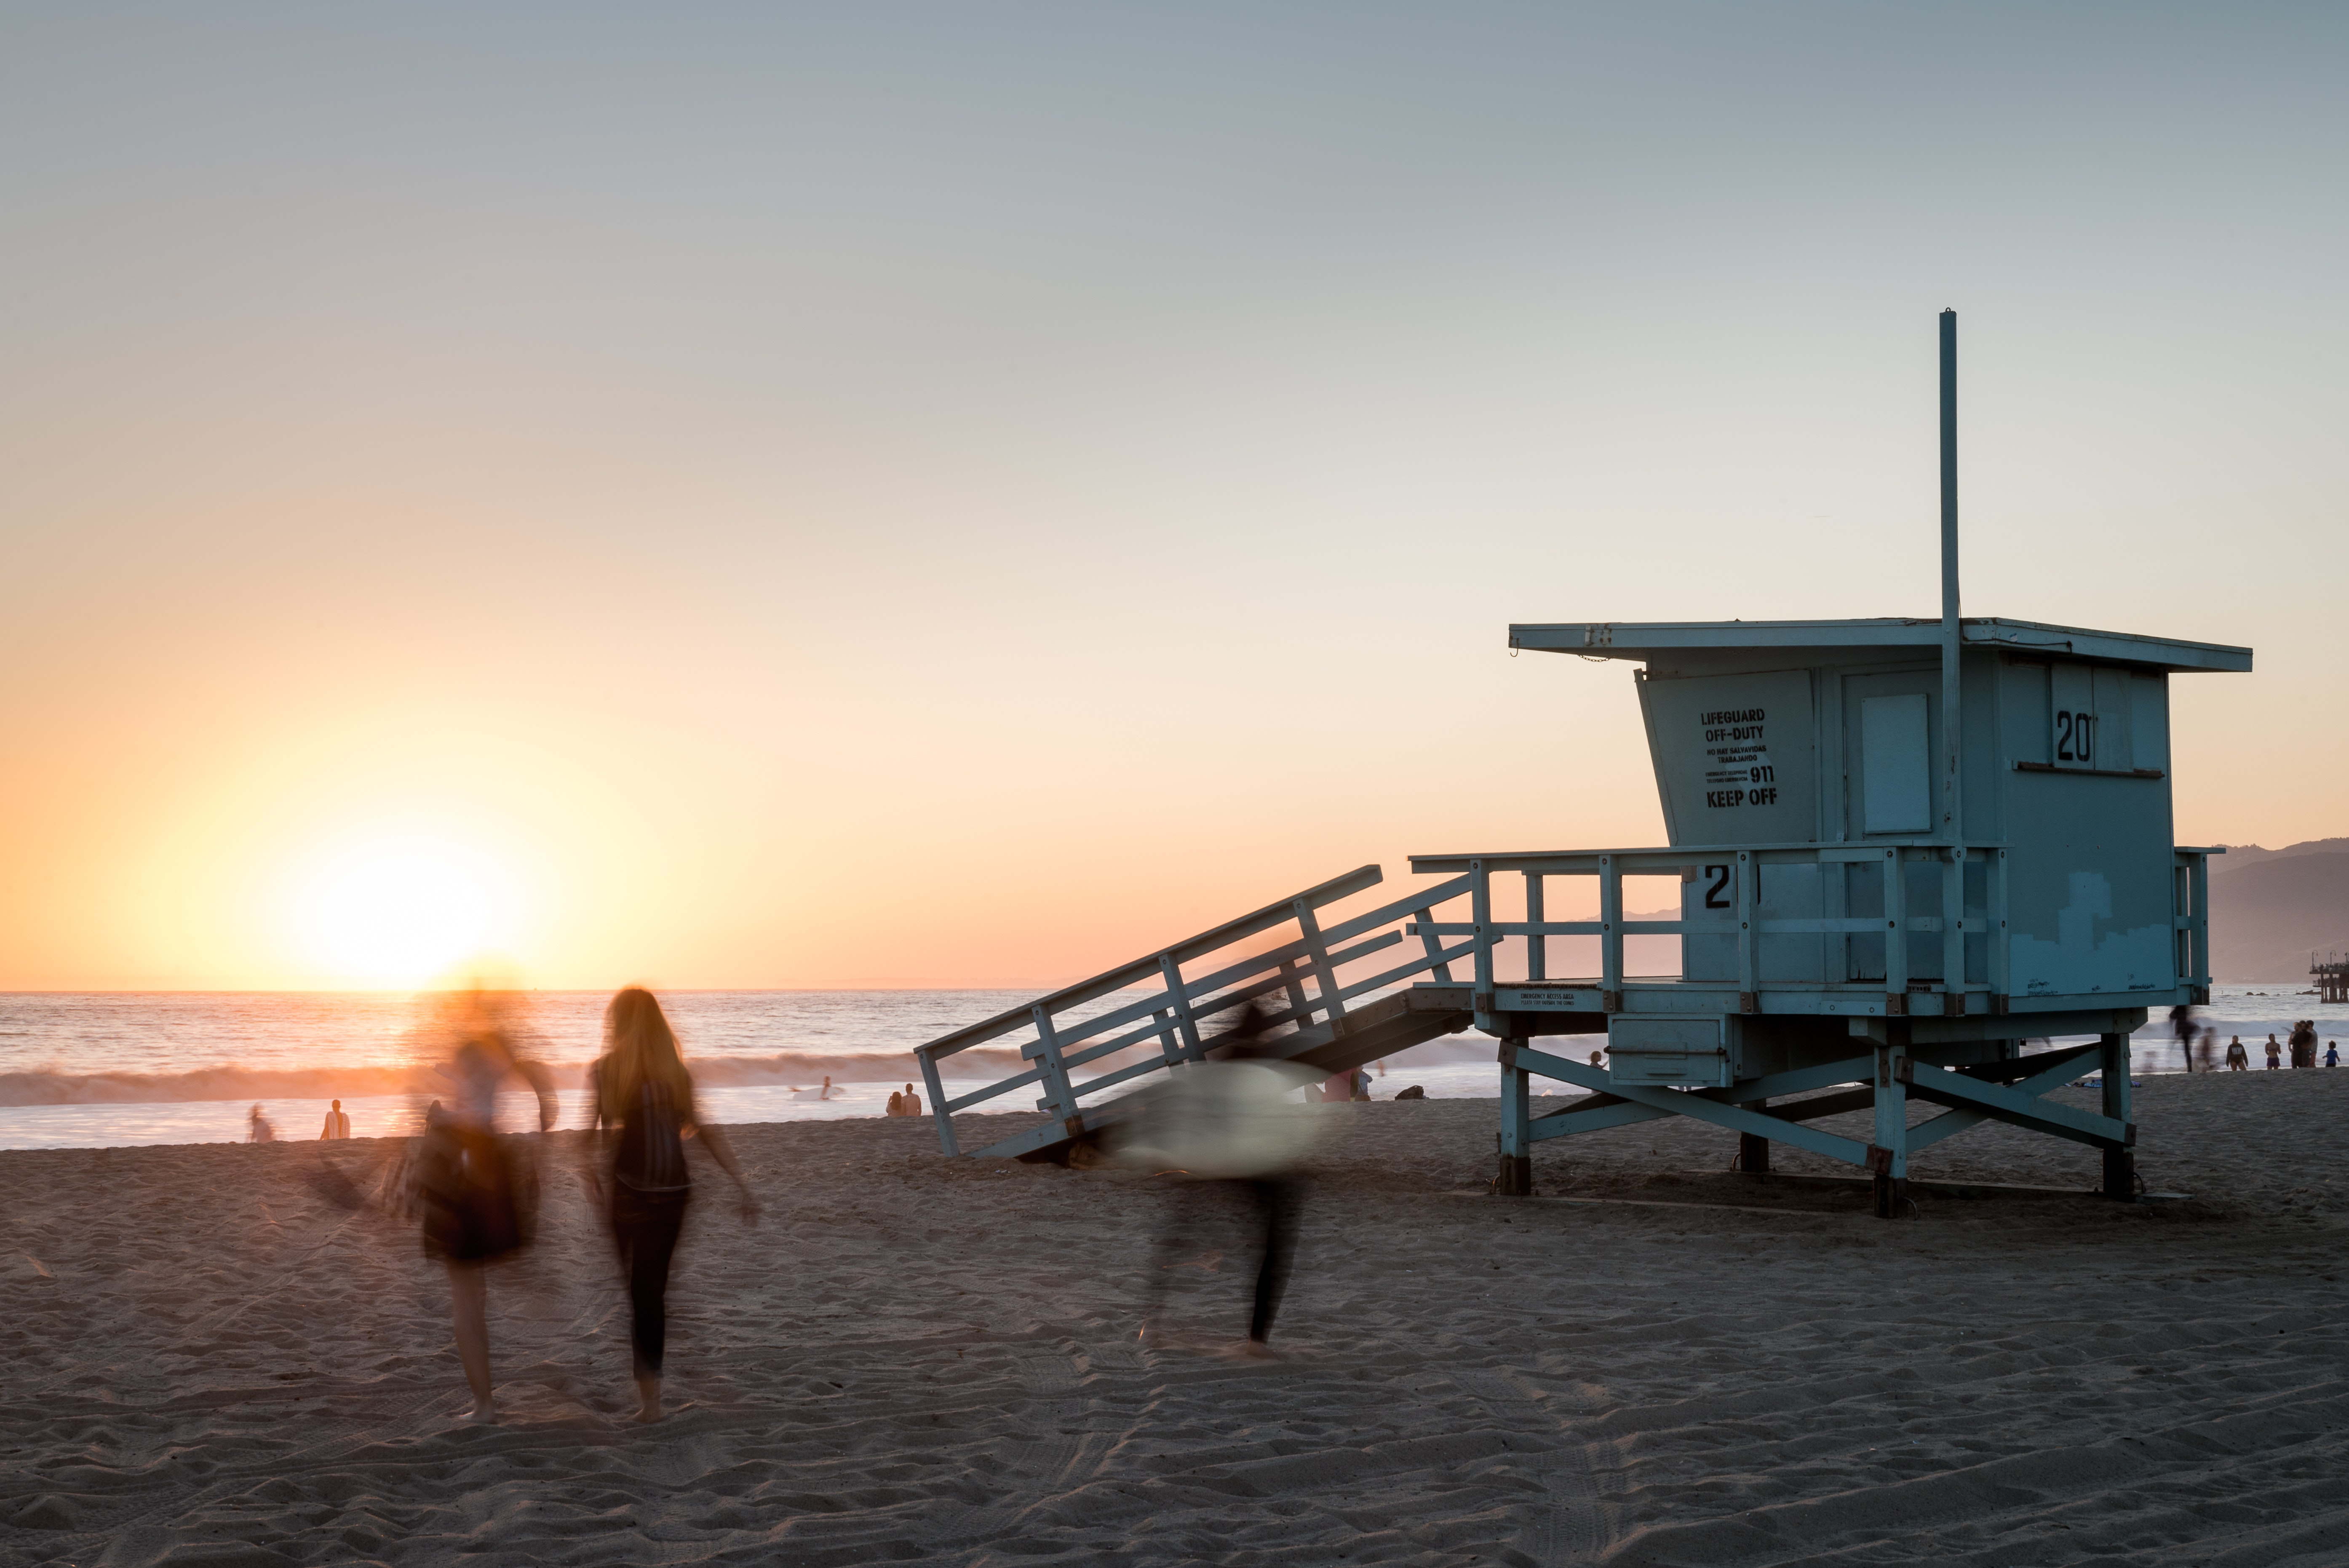 White wooden lifeguard shed photo